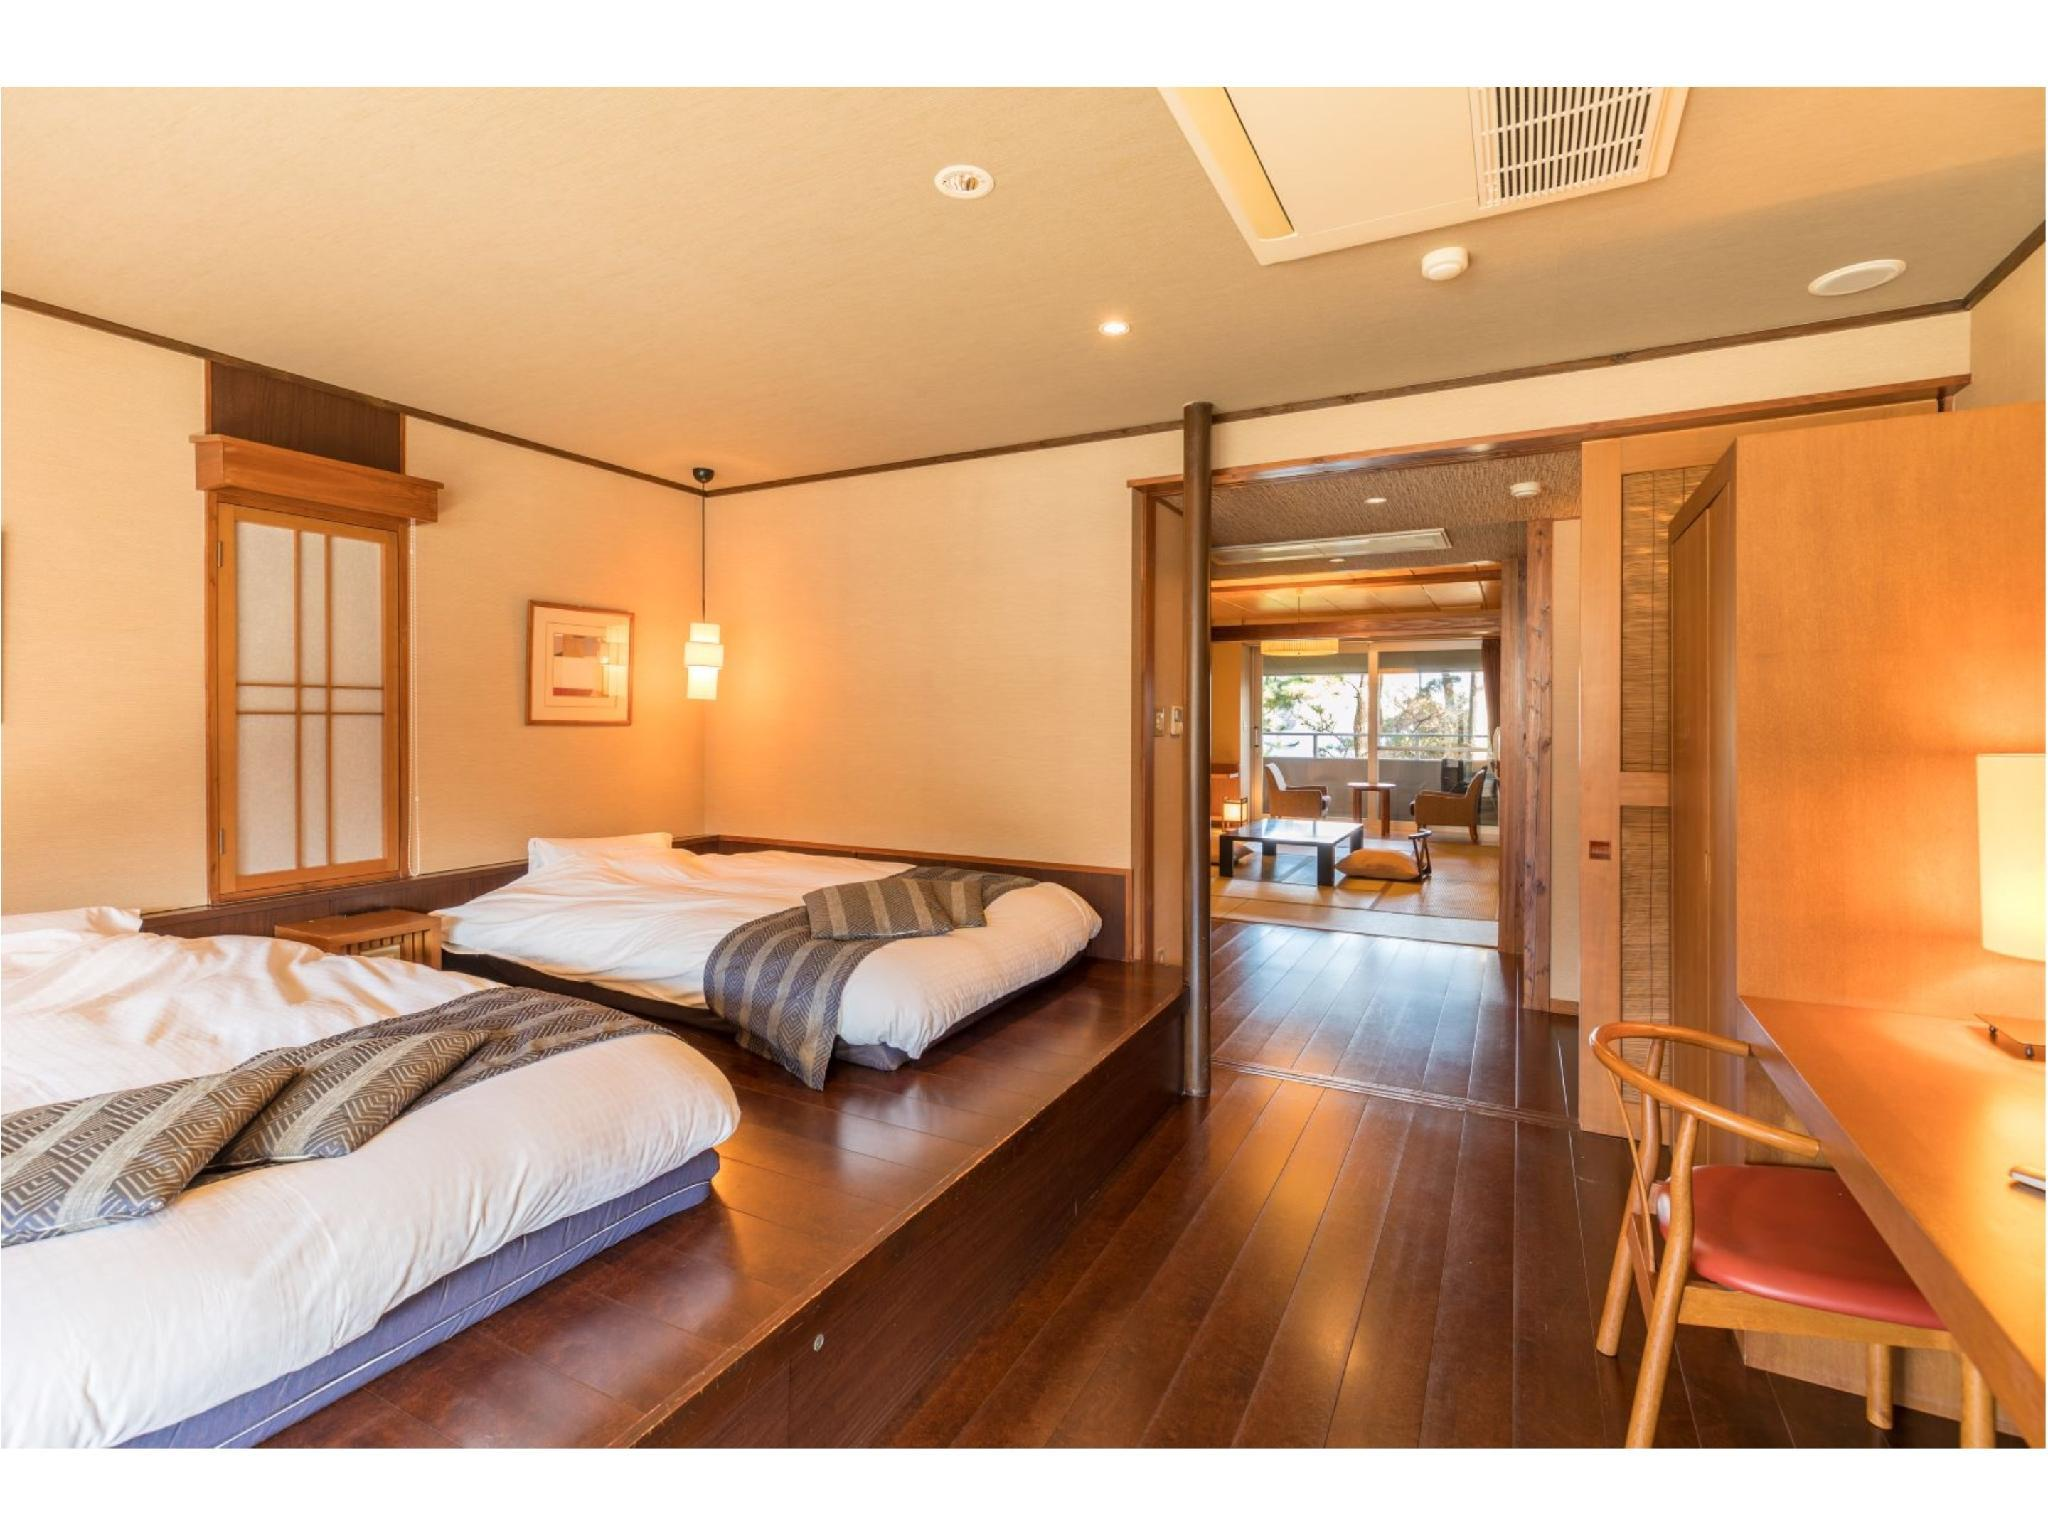 Maisonette Suite with Open-air Bath (Toki no Club Type, Detached Wing)